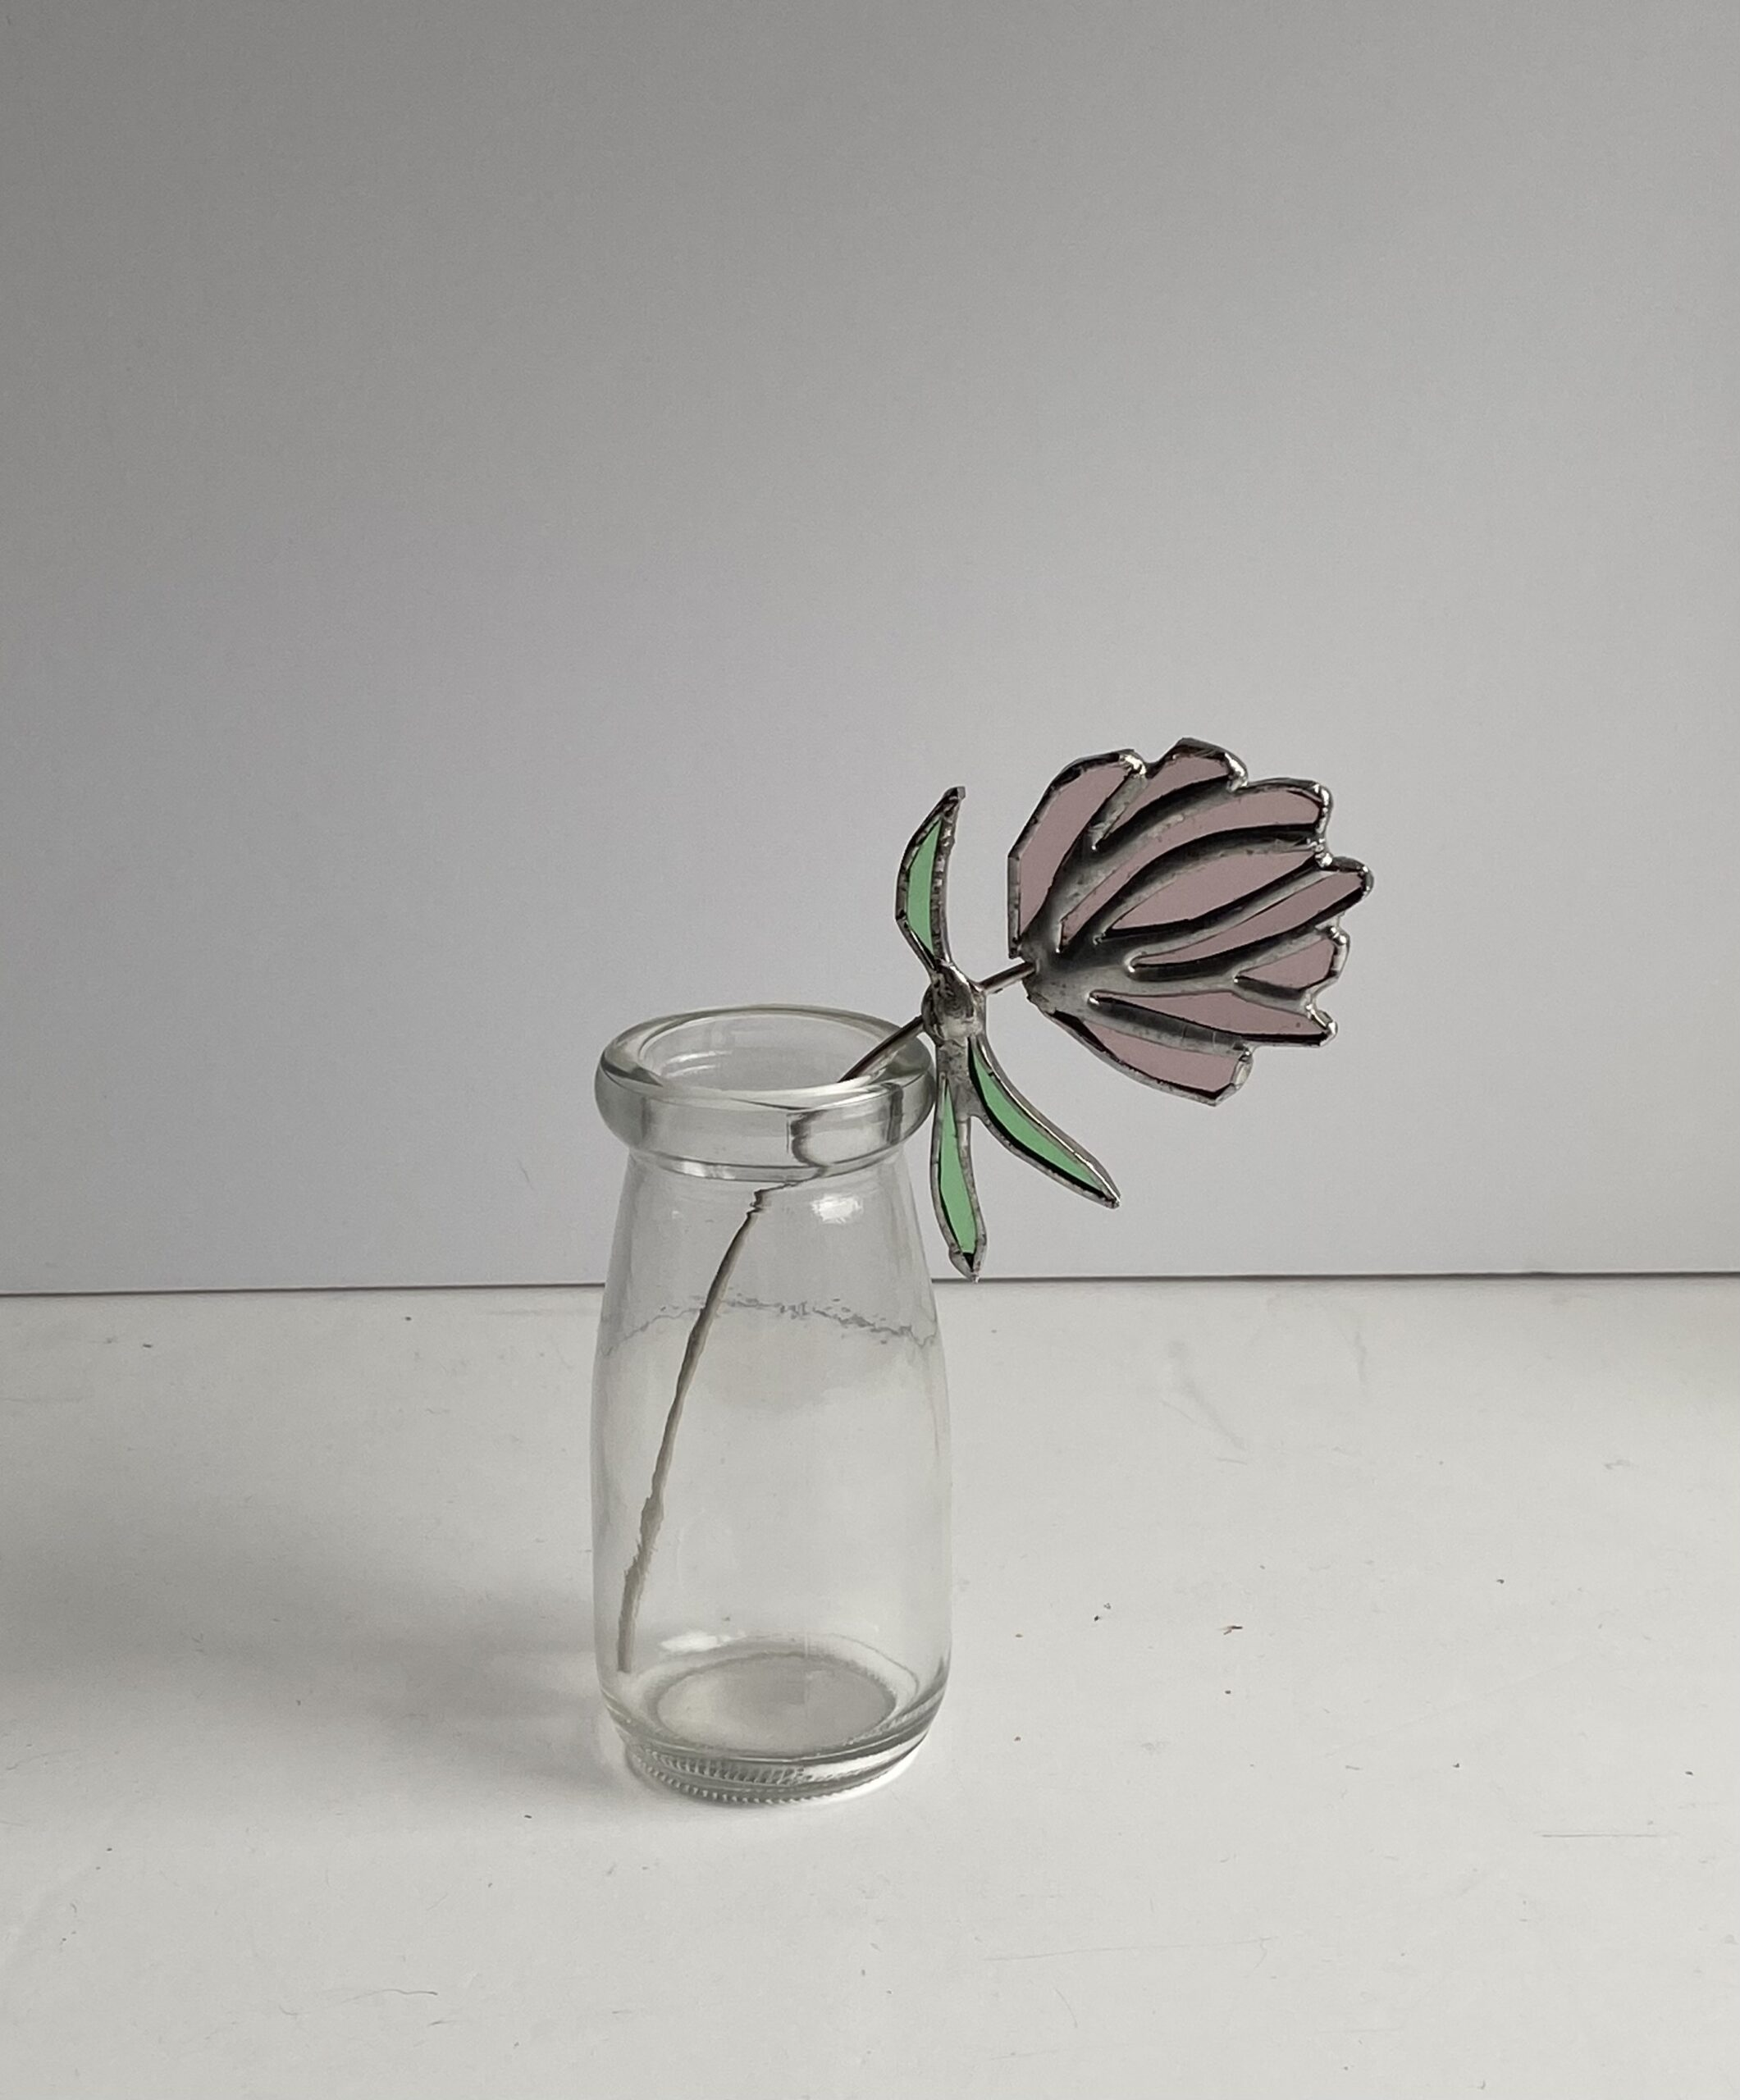 Stained glass flower of clover by Samantha Yates.